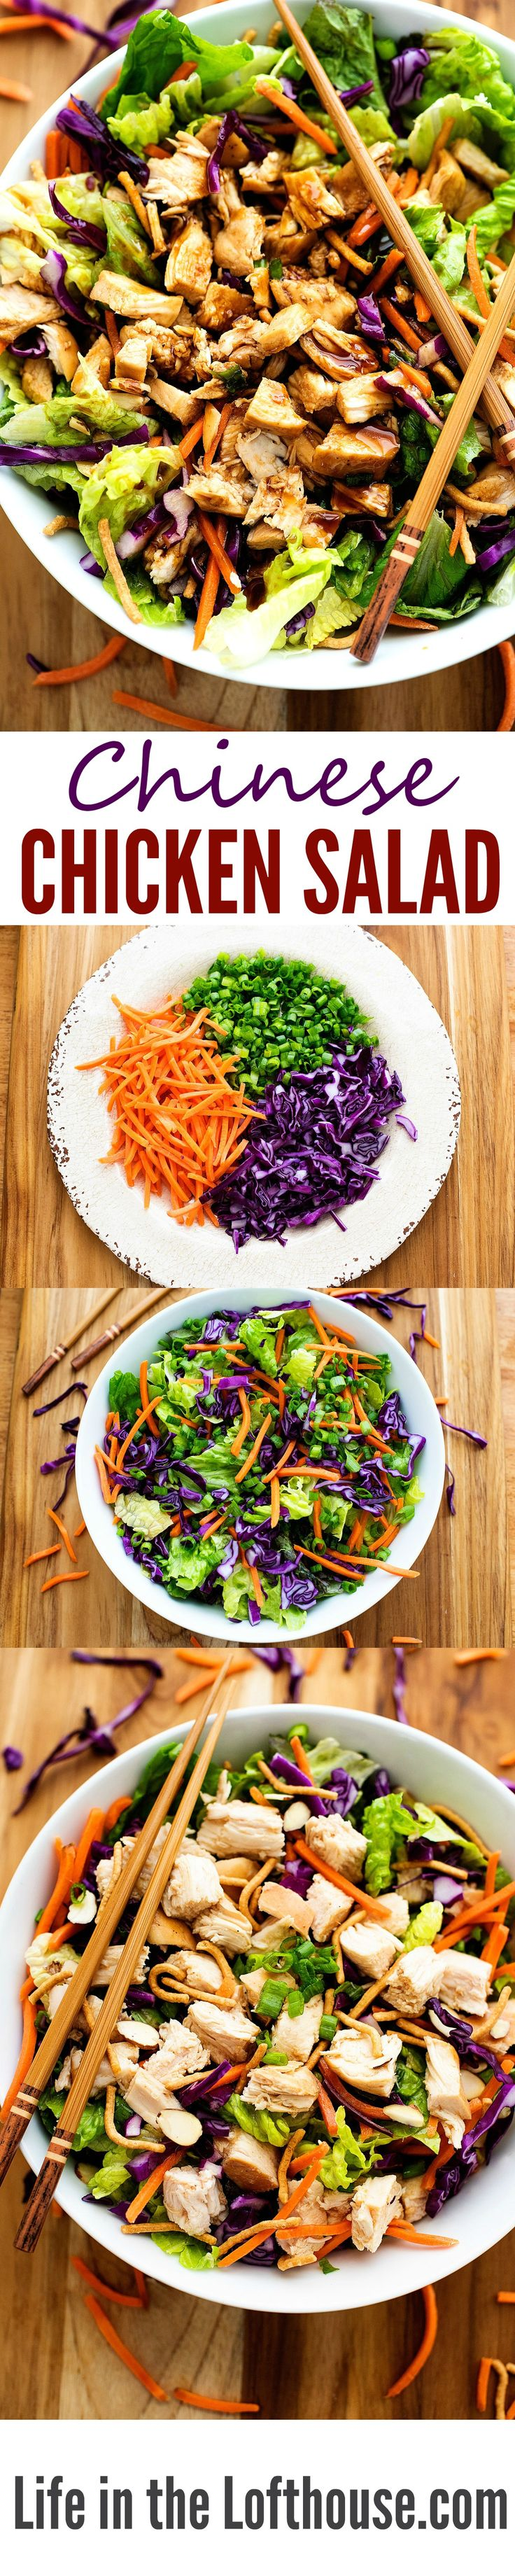 Romaine lettuce, shredded carrots, green onion and red cabbage with grilled…